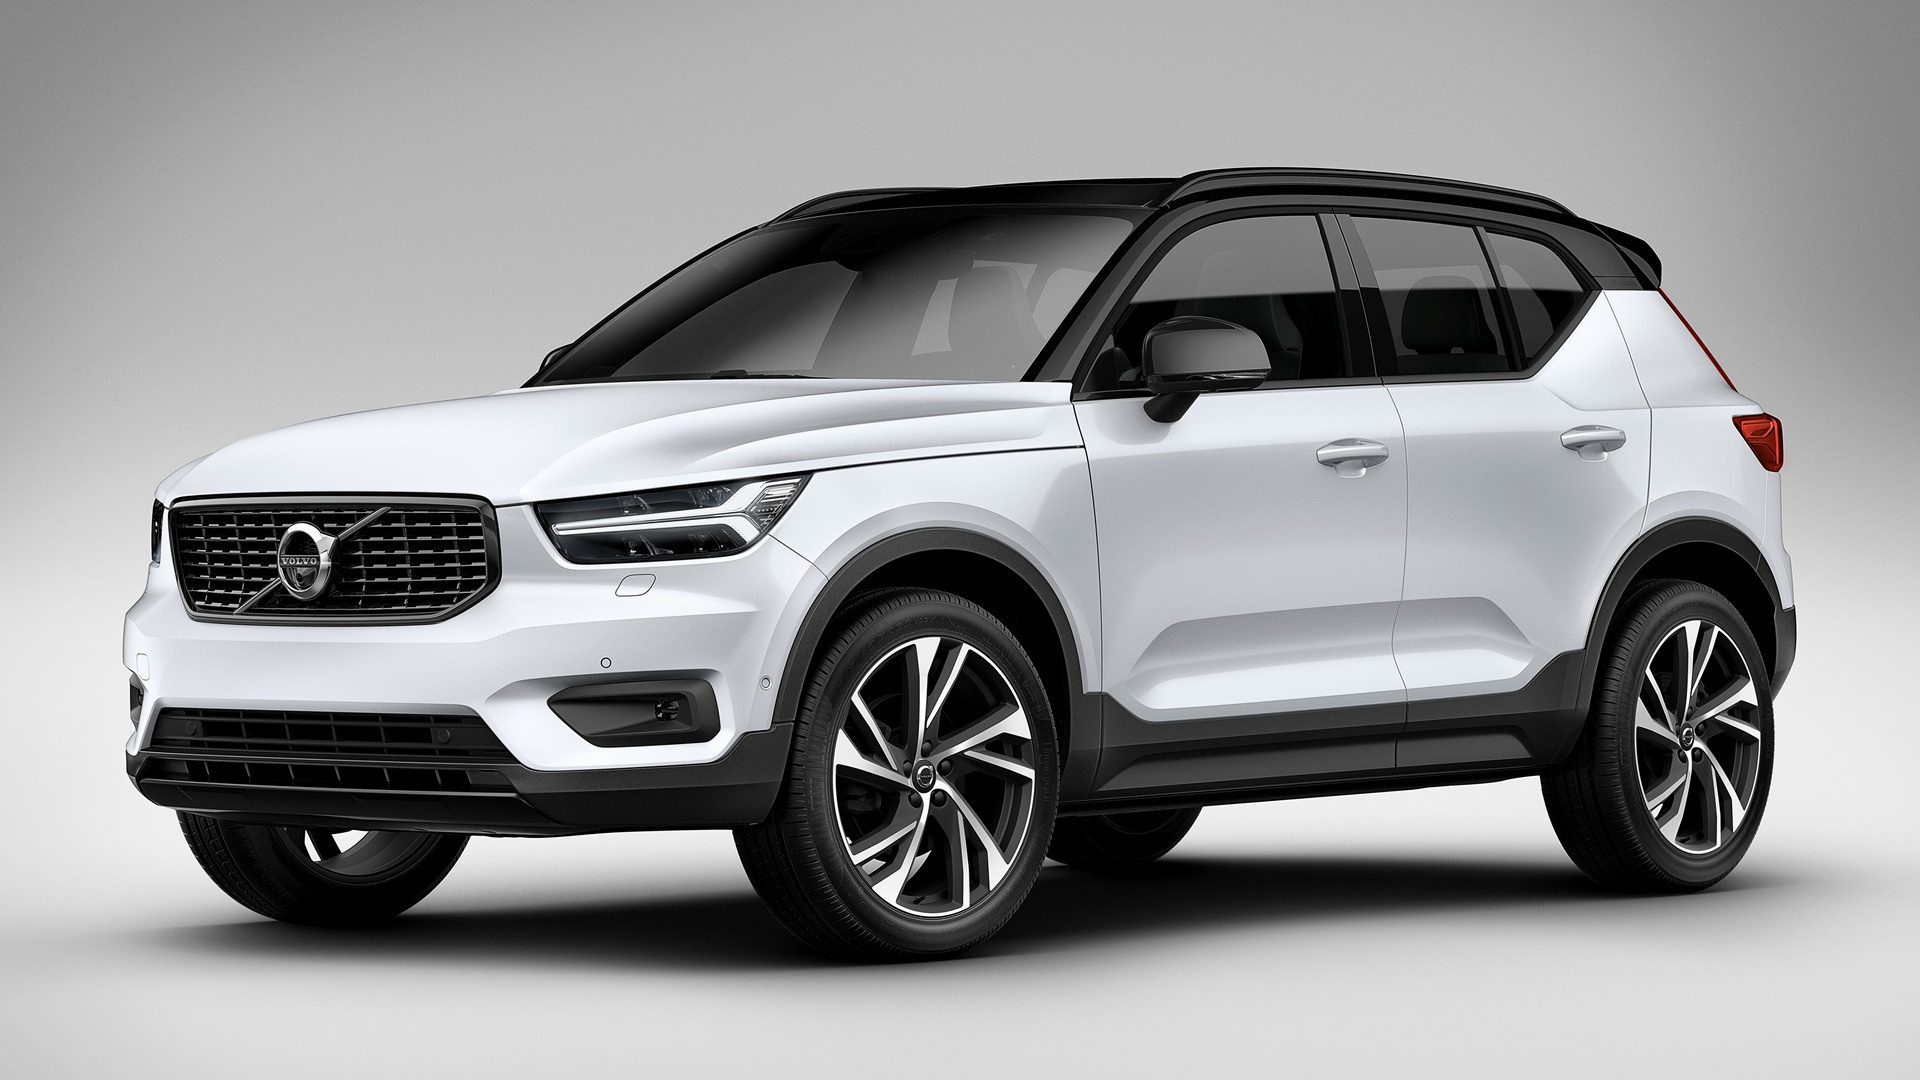 2017 volvo xc40 r design wallpapers and hd images car. Black Bedroom Furniture Sets. Home Design Ideas